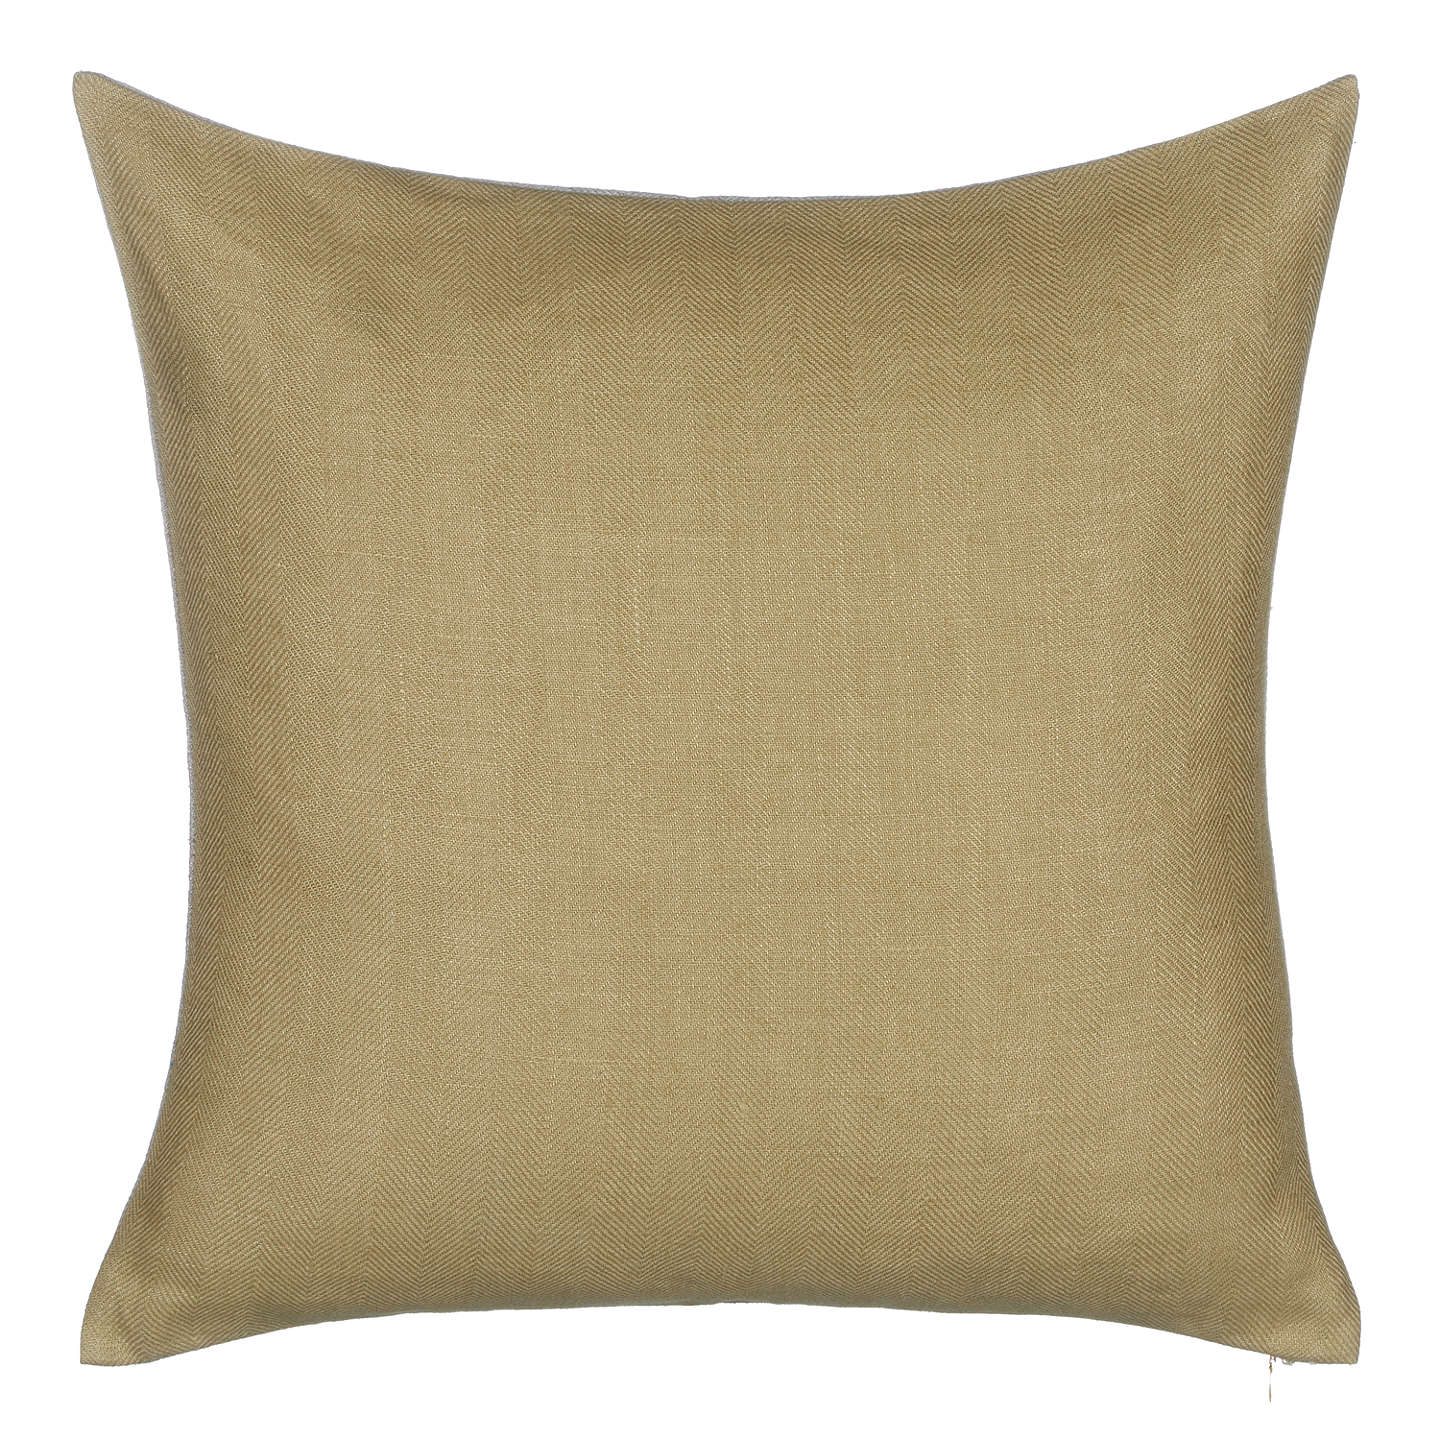 BuyCroft Collection Herringbone Linen Cushion, Green Tea Online at johnlewis.com